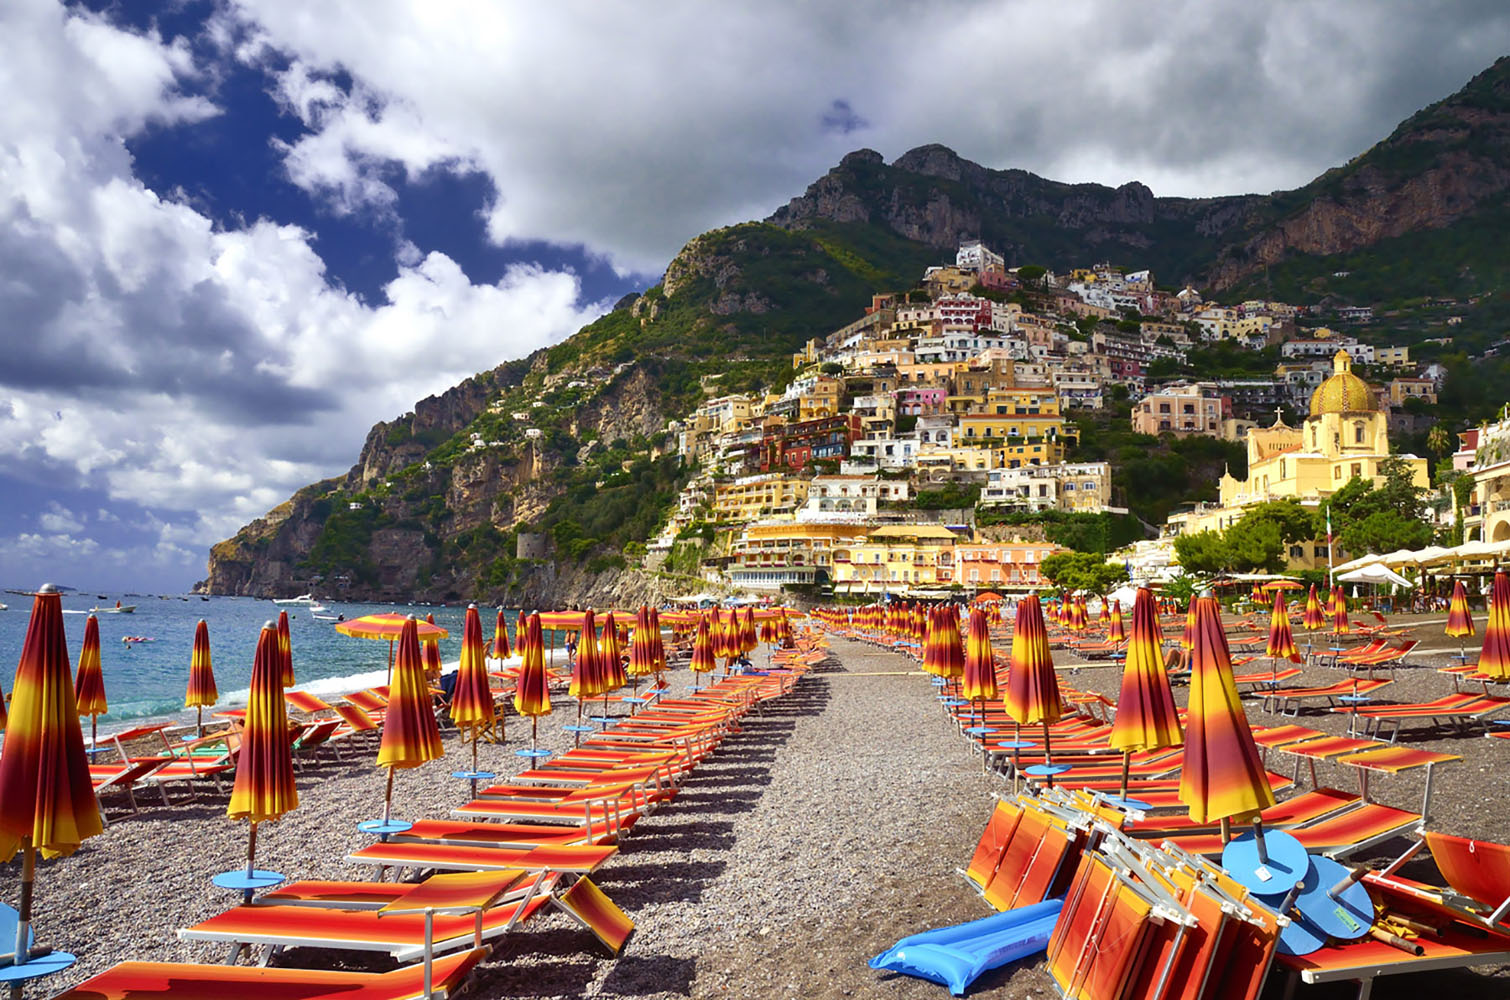 Though smaller than Amalfi, Positano is a trendier and more popular stop along the Amalfi Coast.